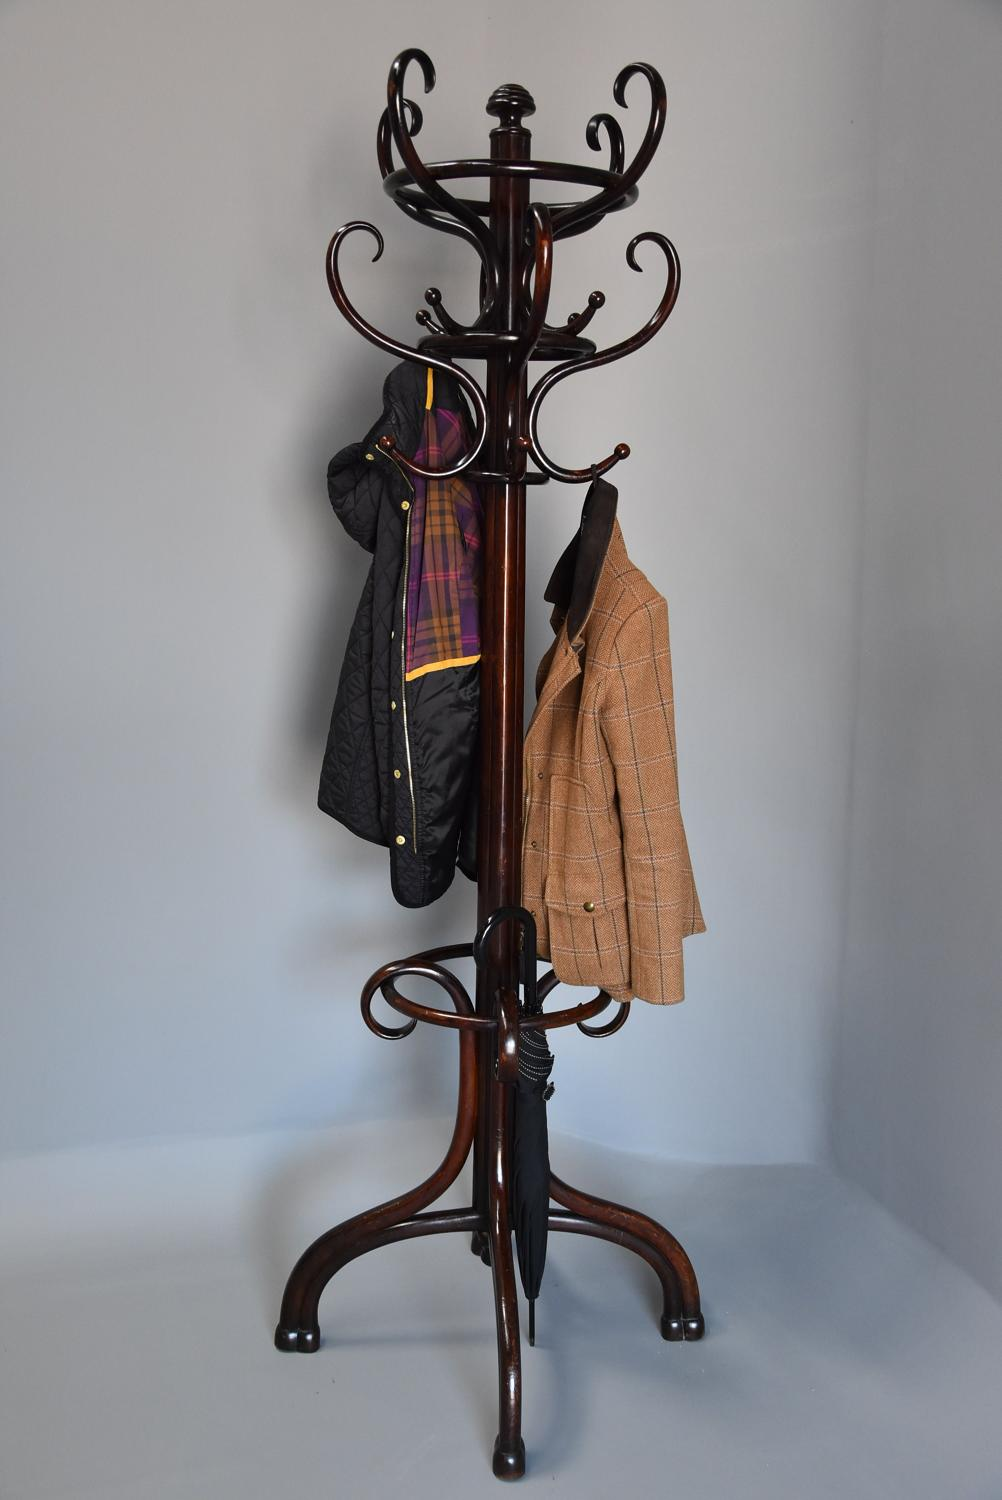 Original bentwood hat stand stamped 'Thonet'